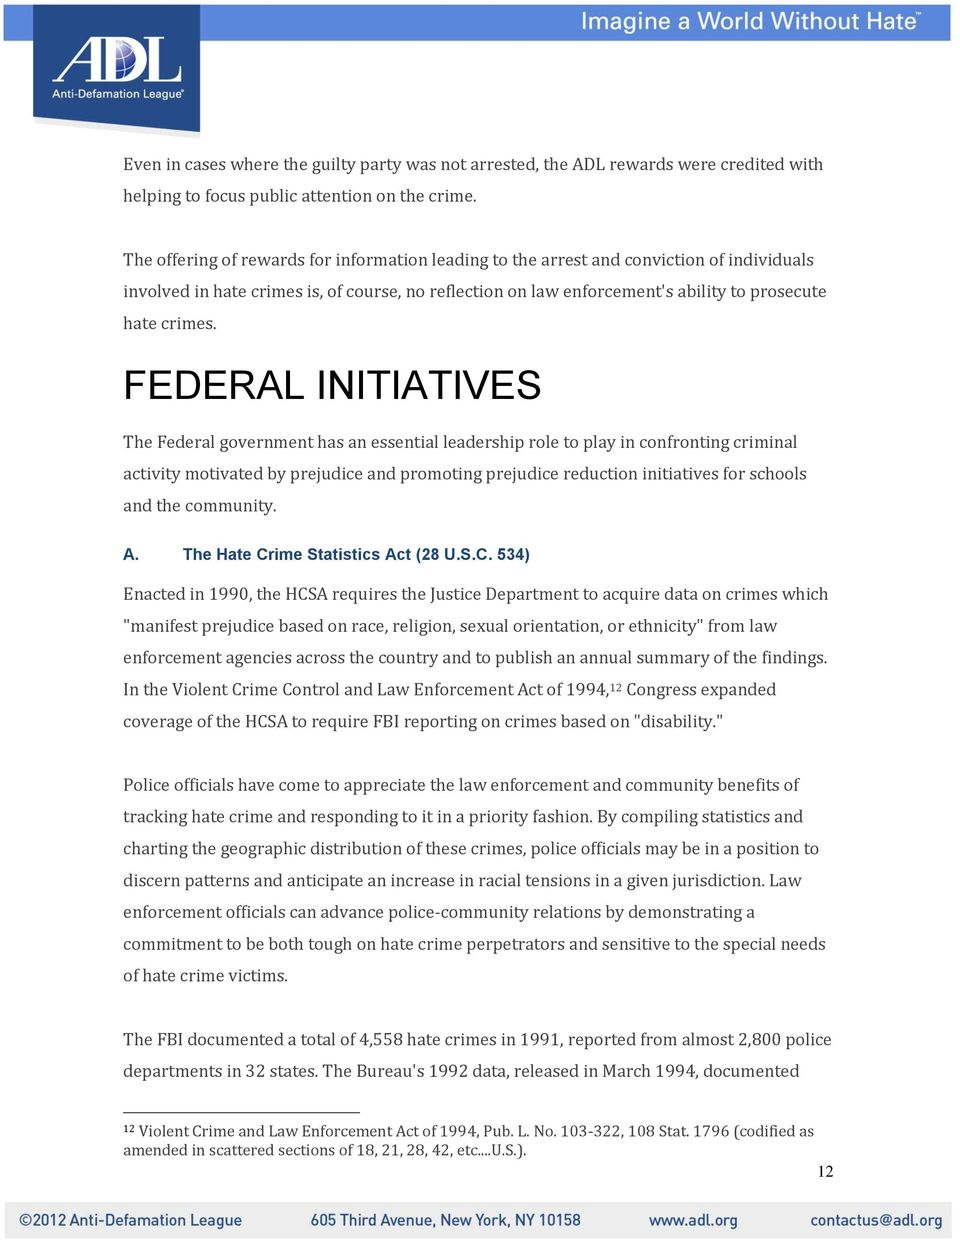 FEDERAL INITIATIVES The Federal government has an essential leadership role to play in confronting criminal activity motivated by prejudice and promoting prejudice reduction initiatives for schools